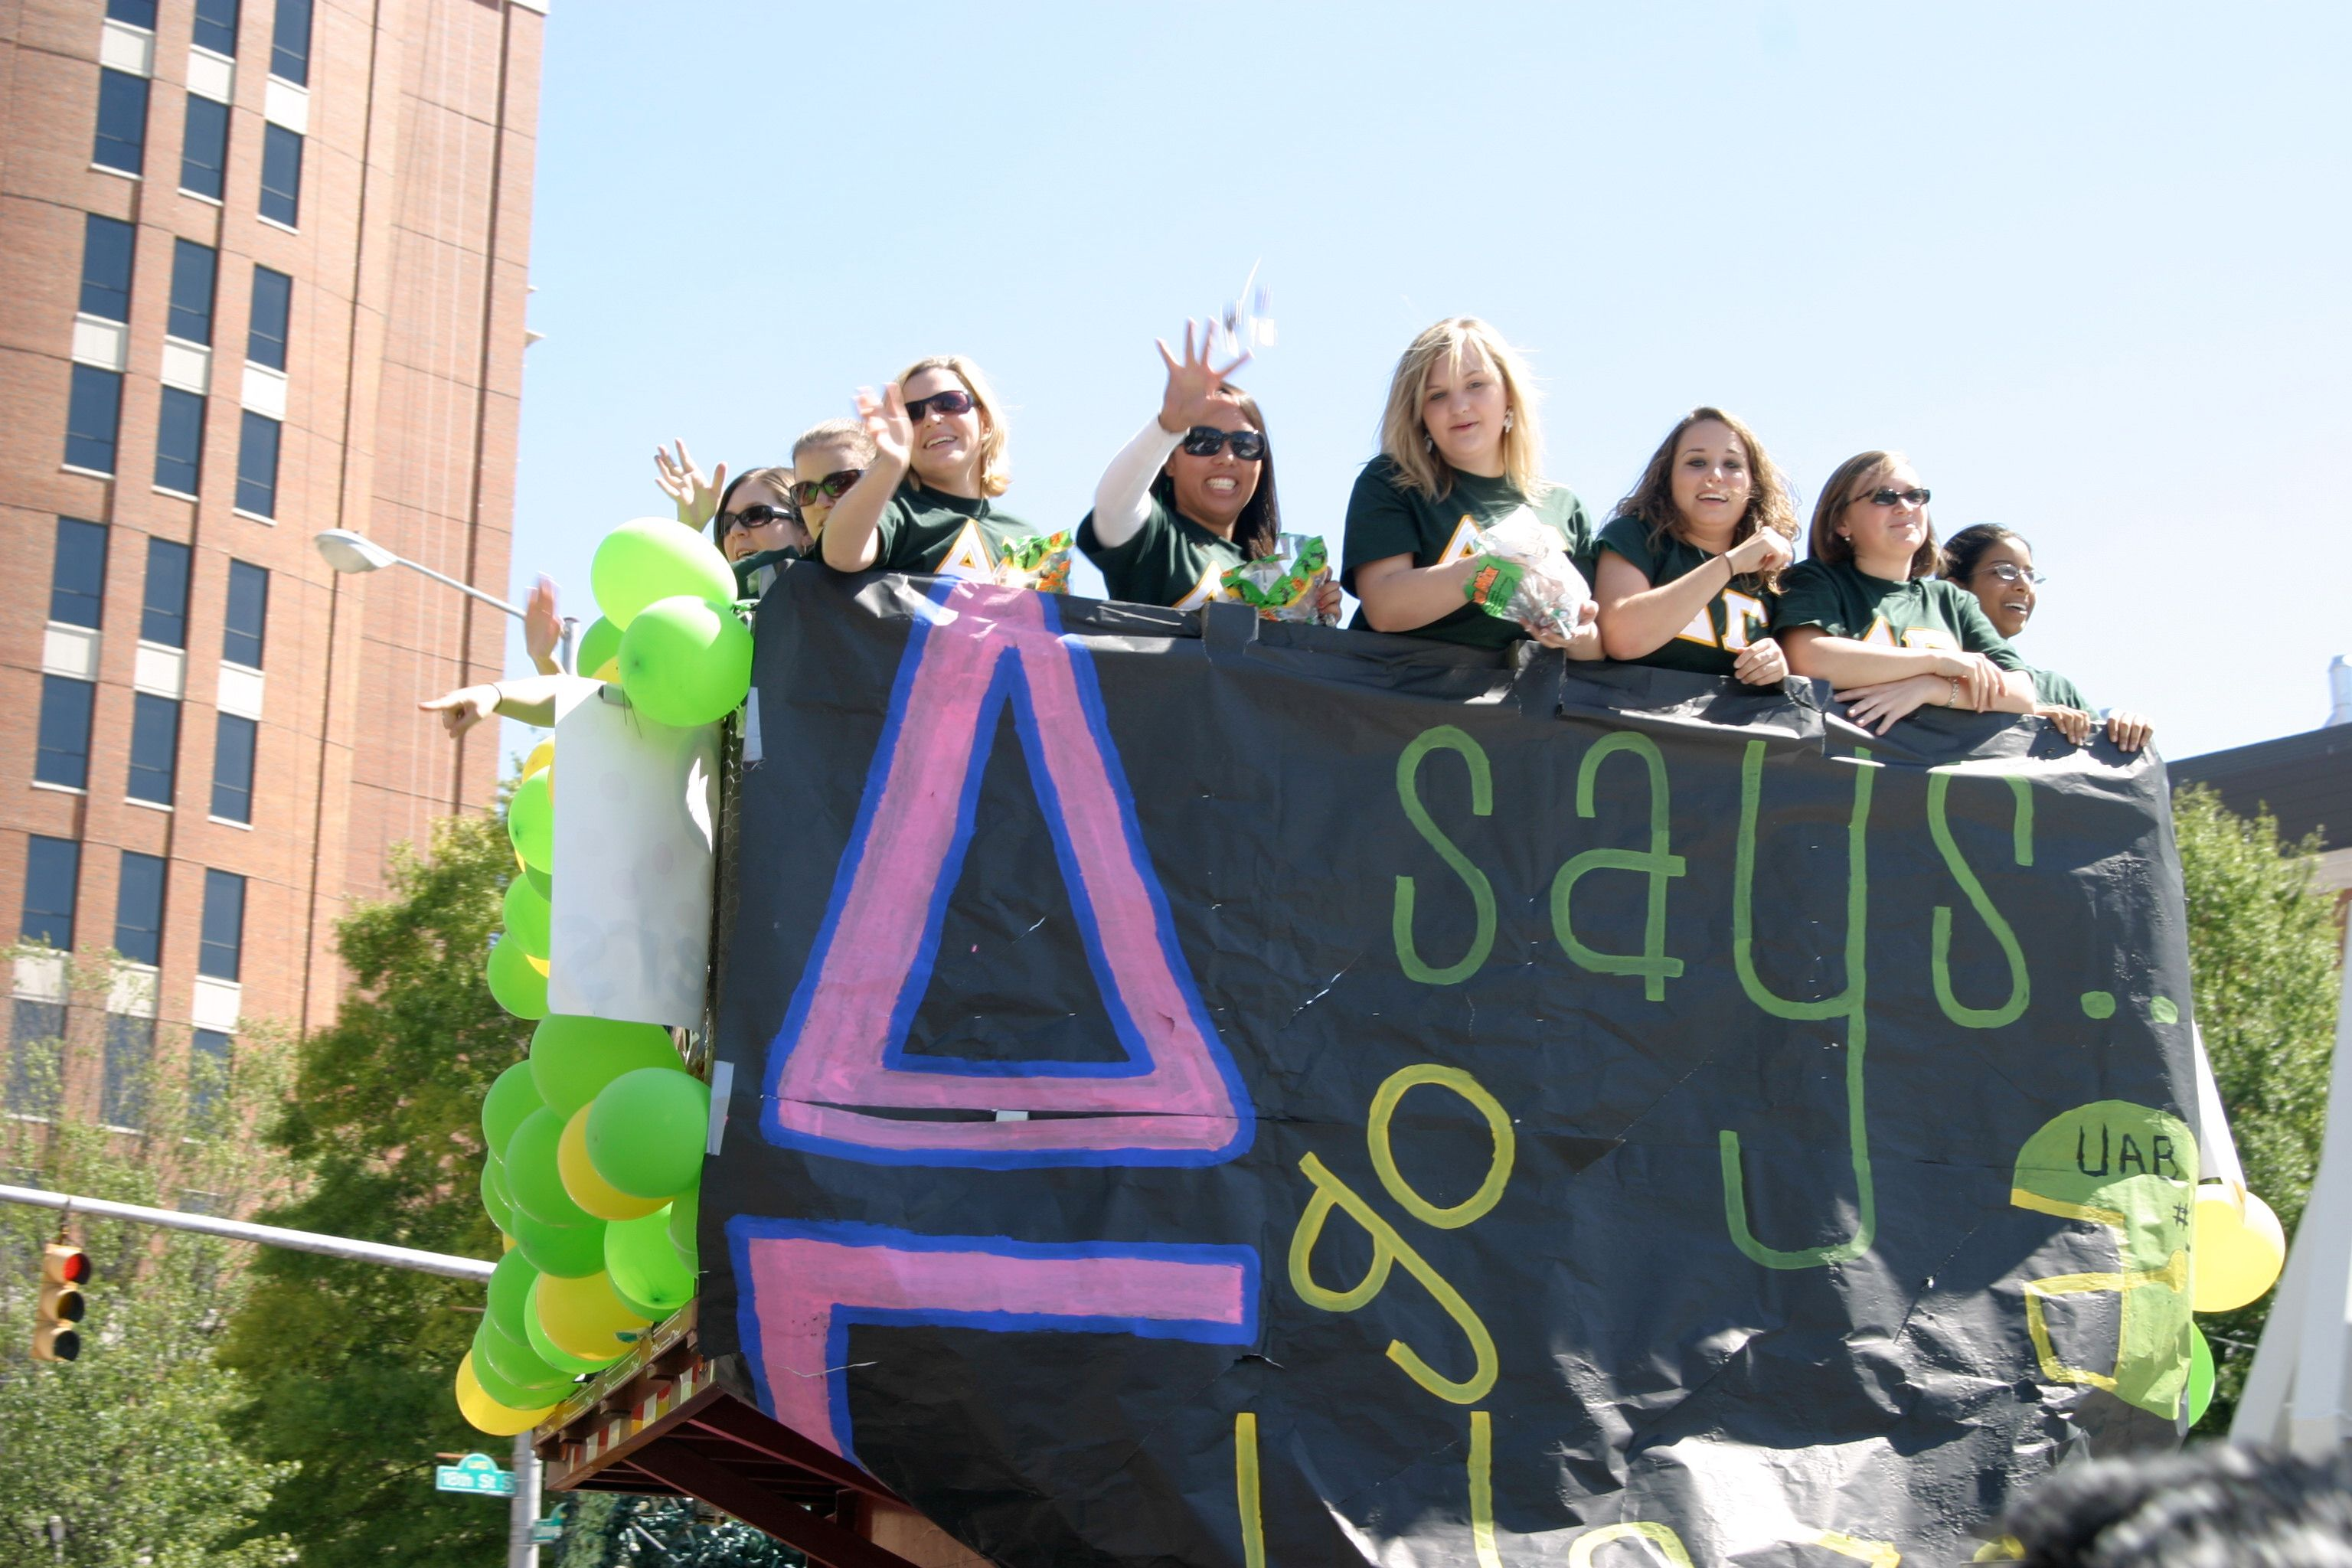 A group of sorority girls at their university's homecoming parade.